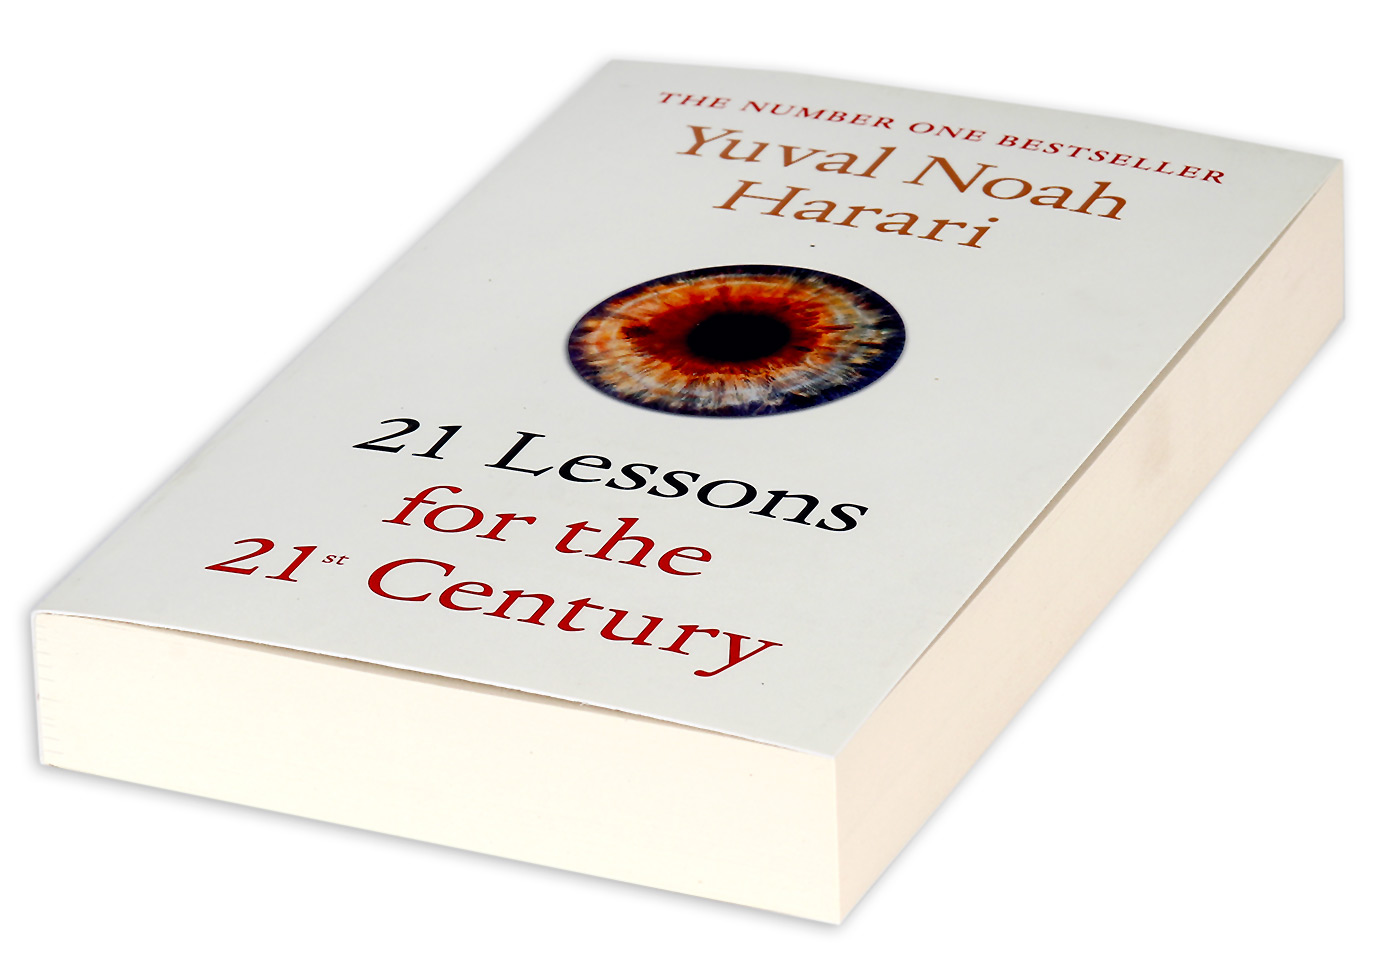 21 lessons for the 21 century